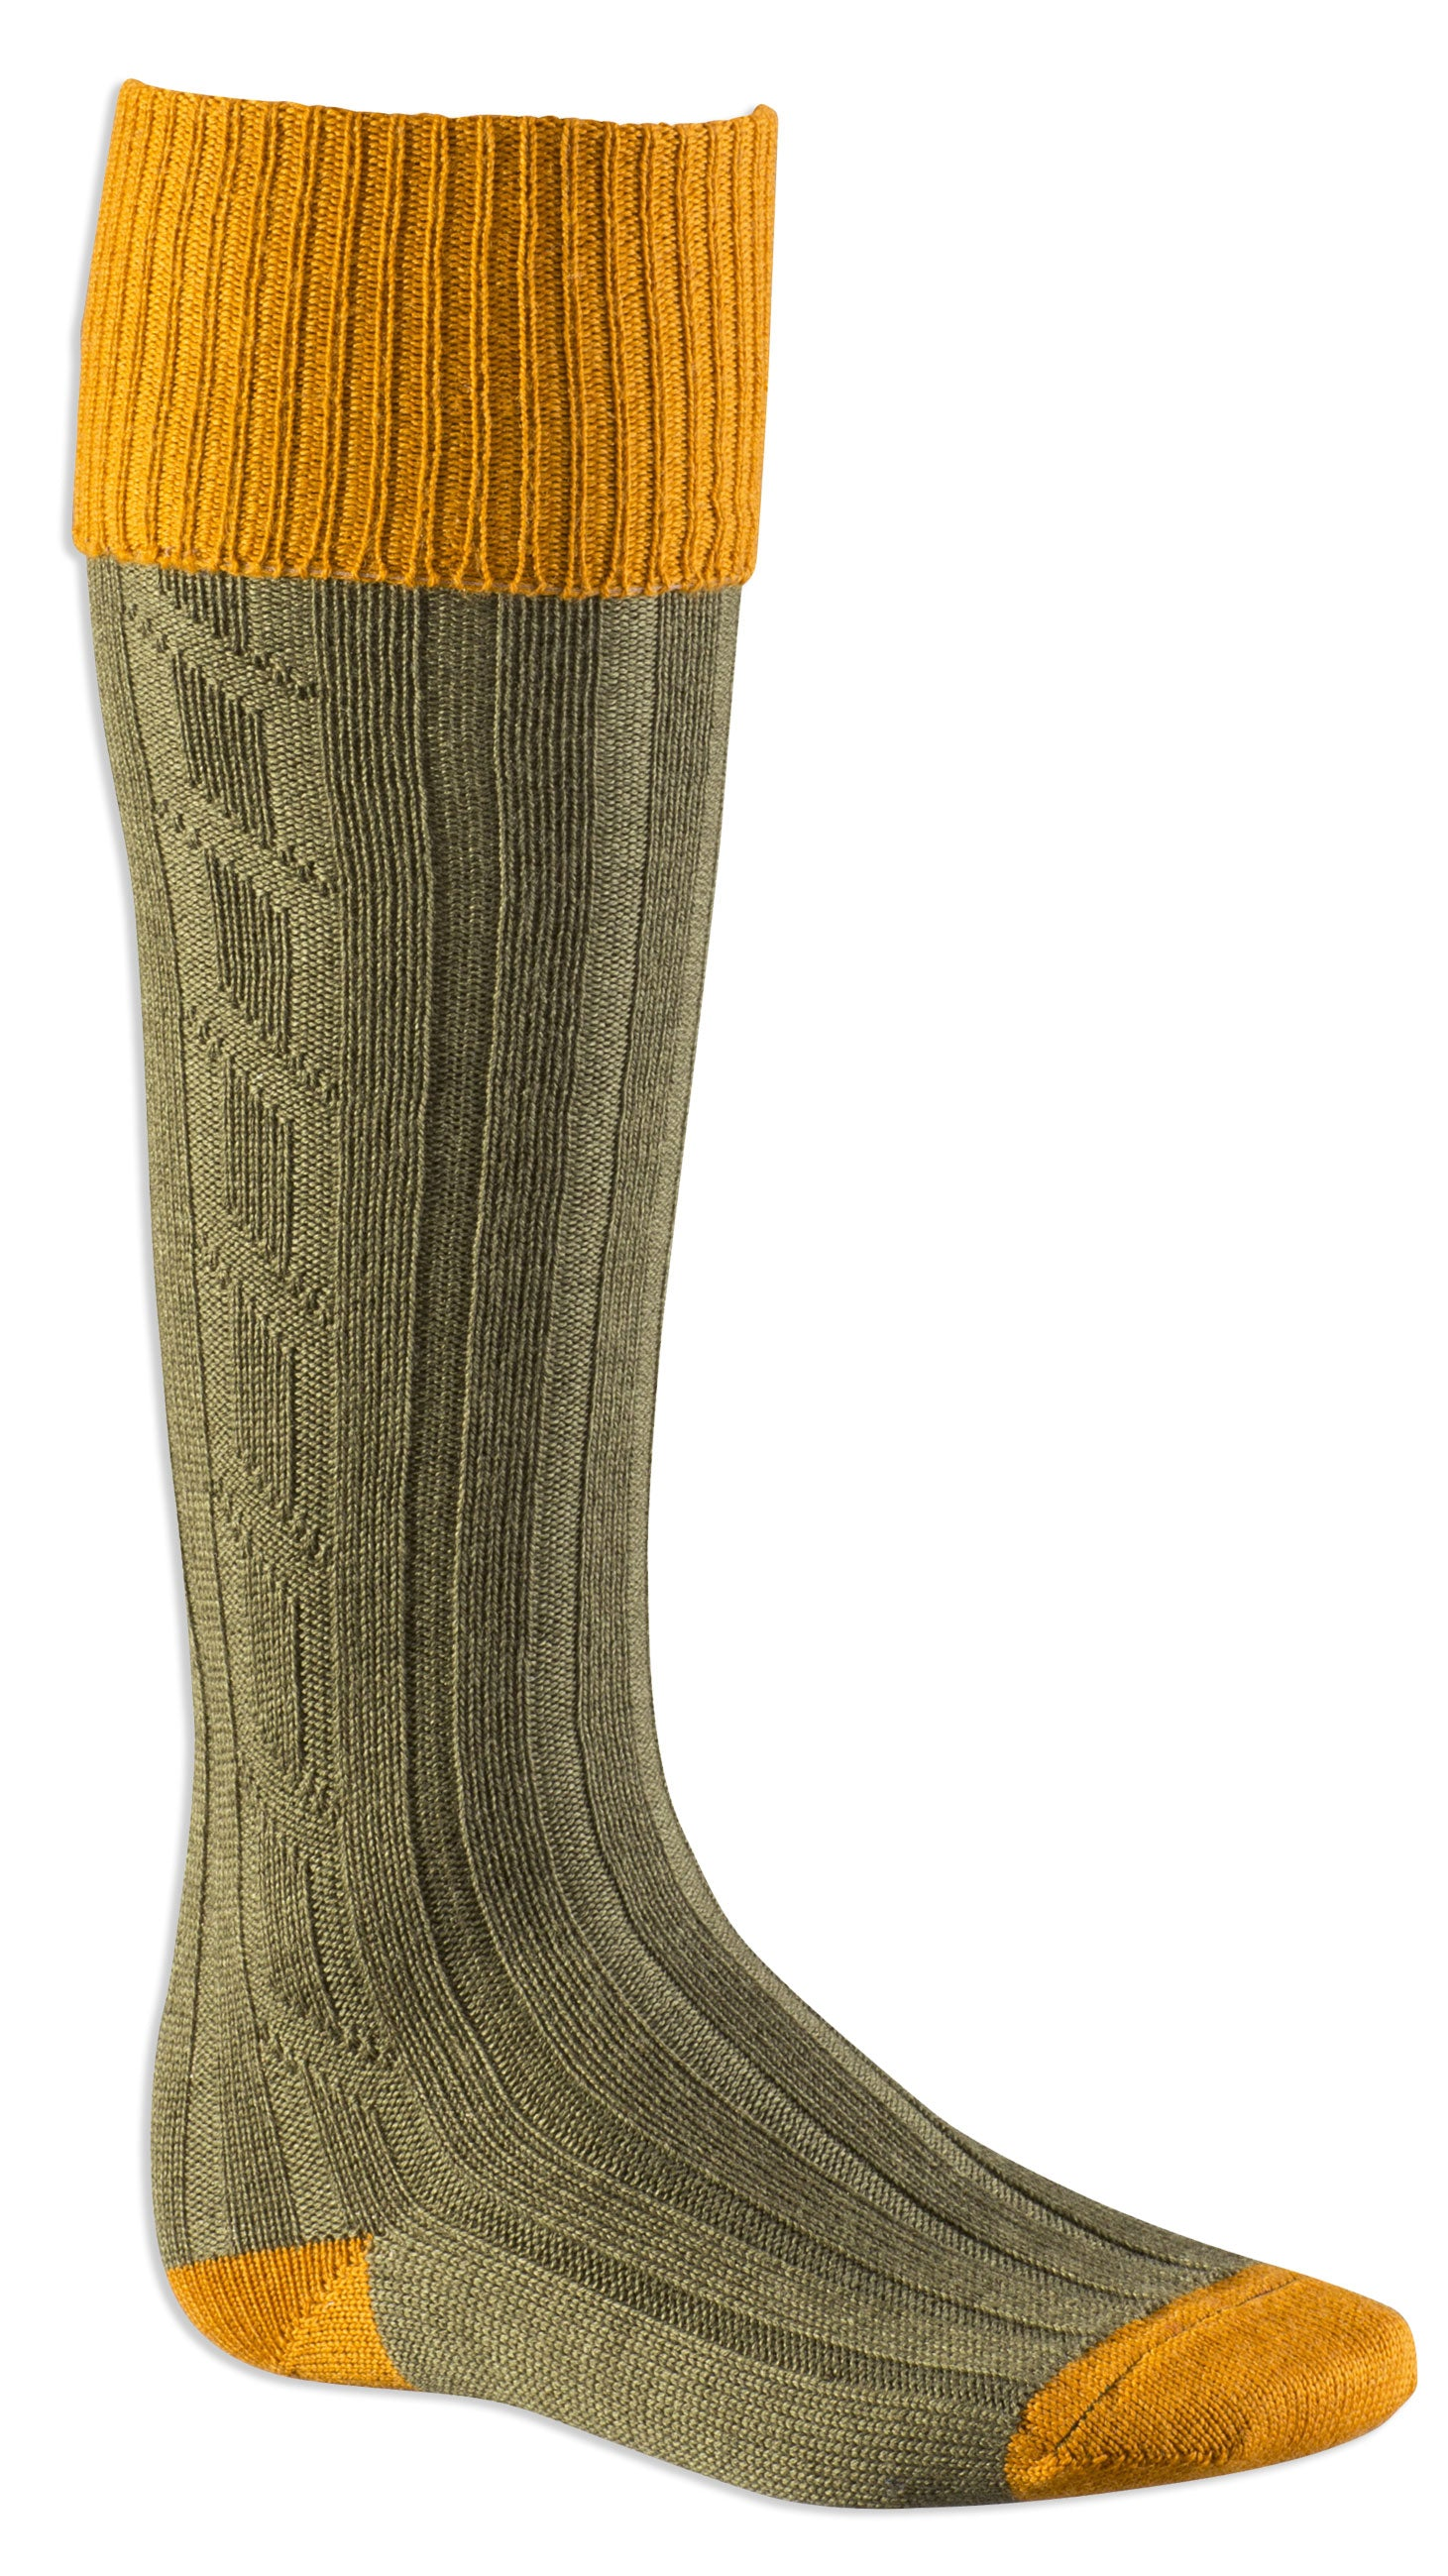 Alan Paine Men's Long Sock in ocre olive